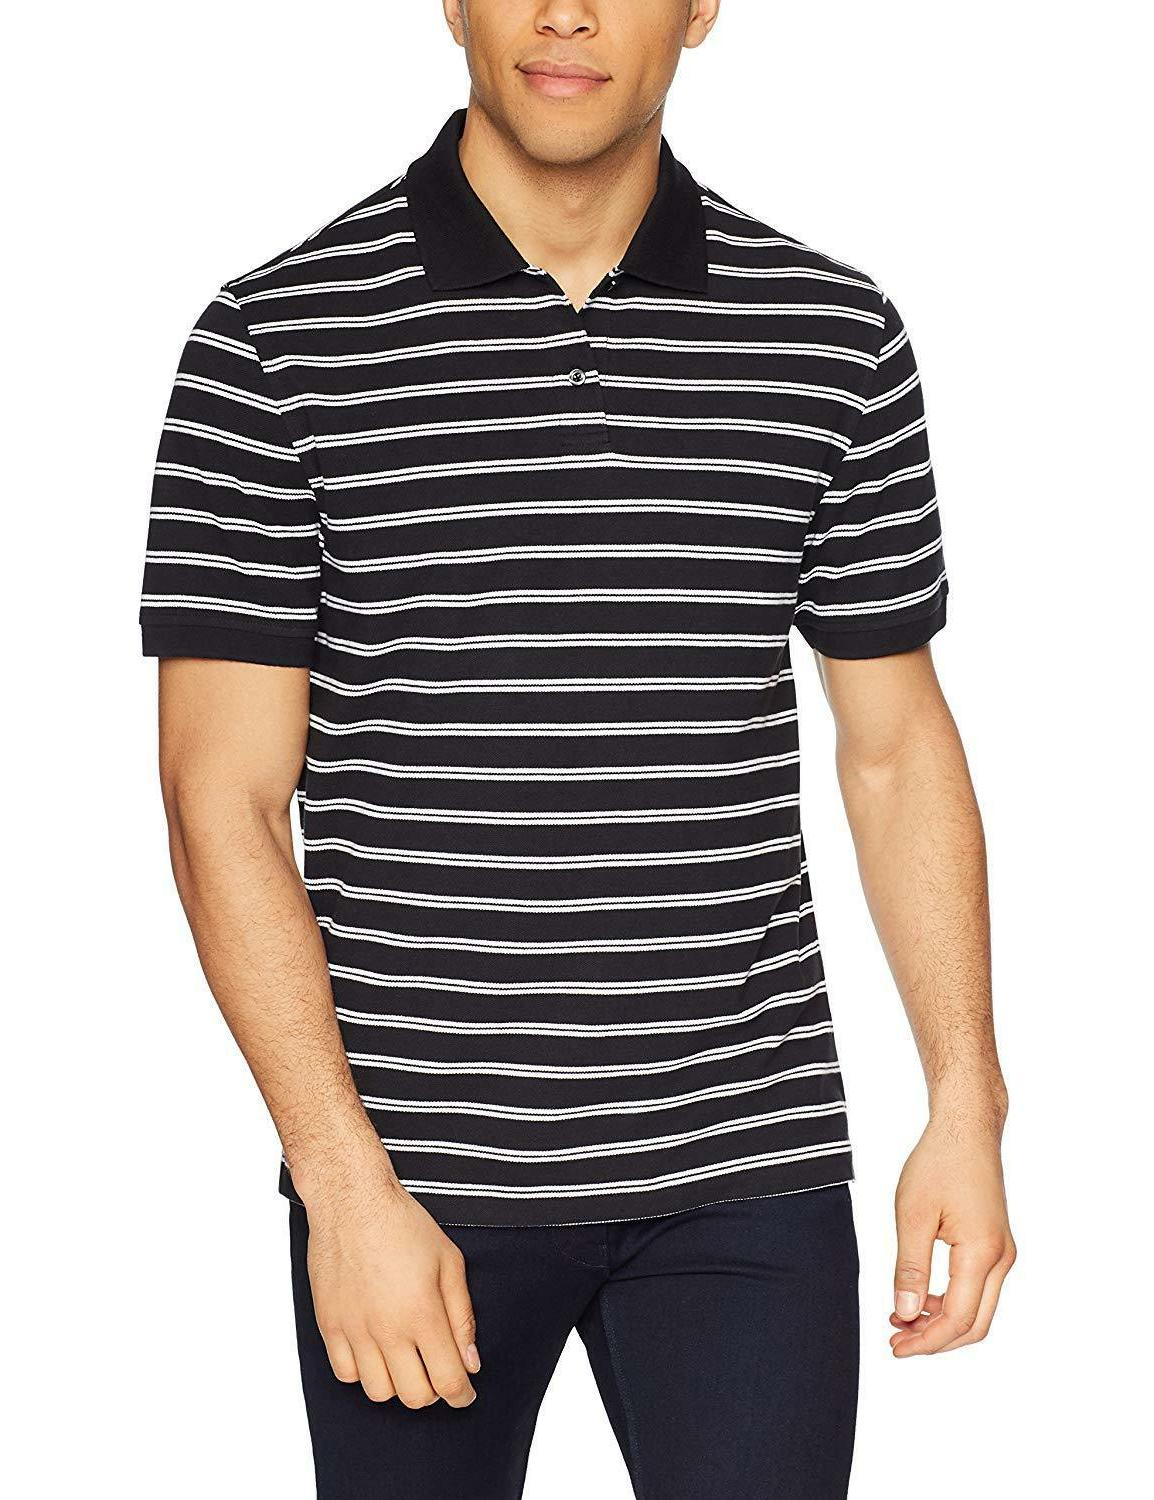 Amazon Essentials Men's Striped Cotton Pique Shirt